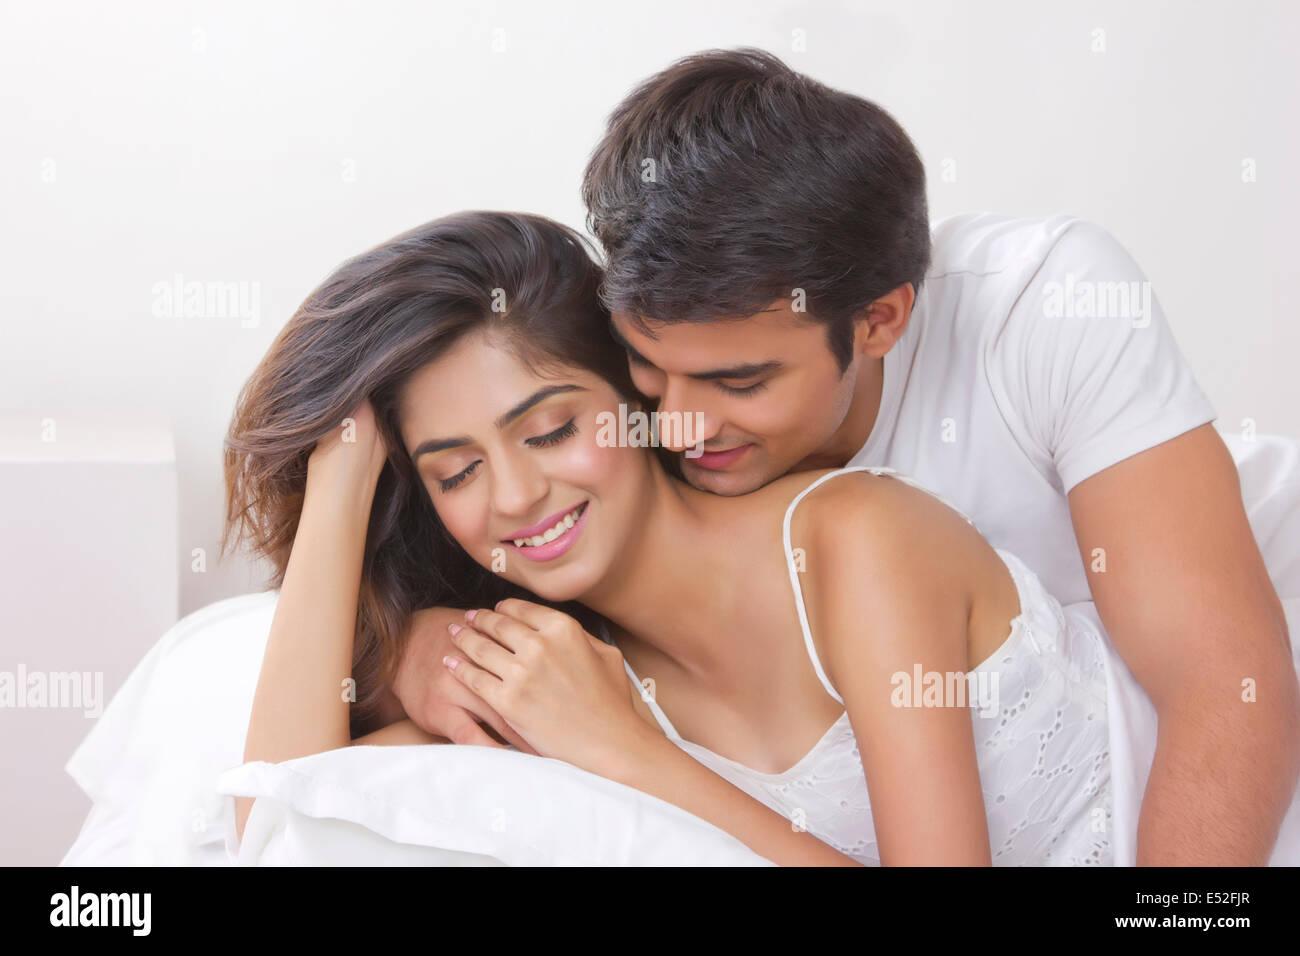 Romantic young couple in bed - Stock Image